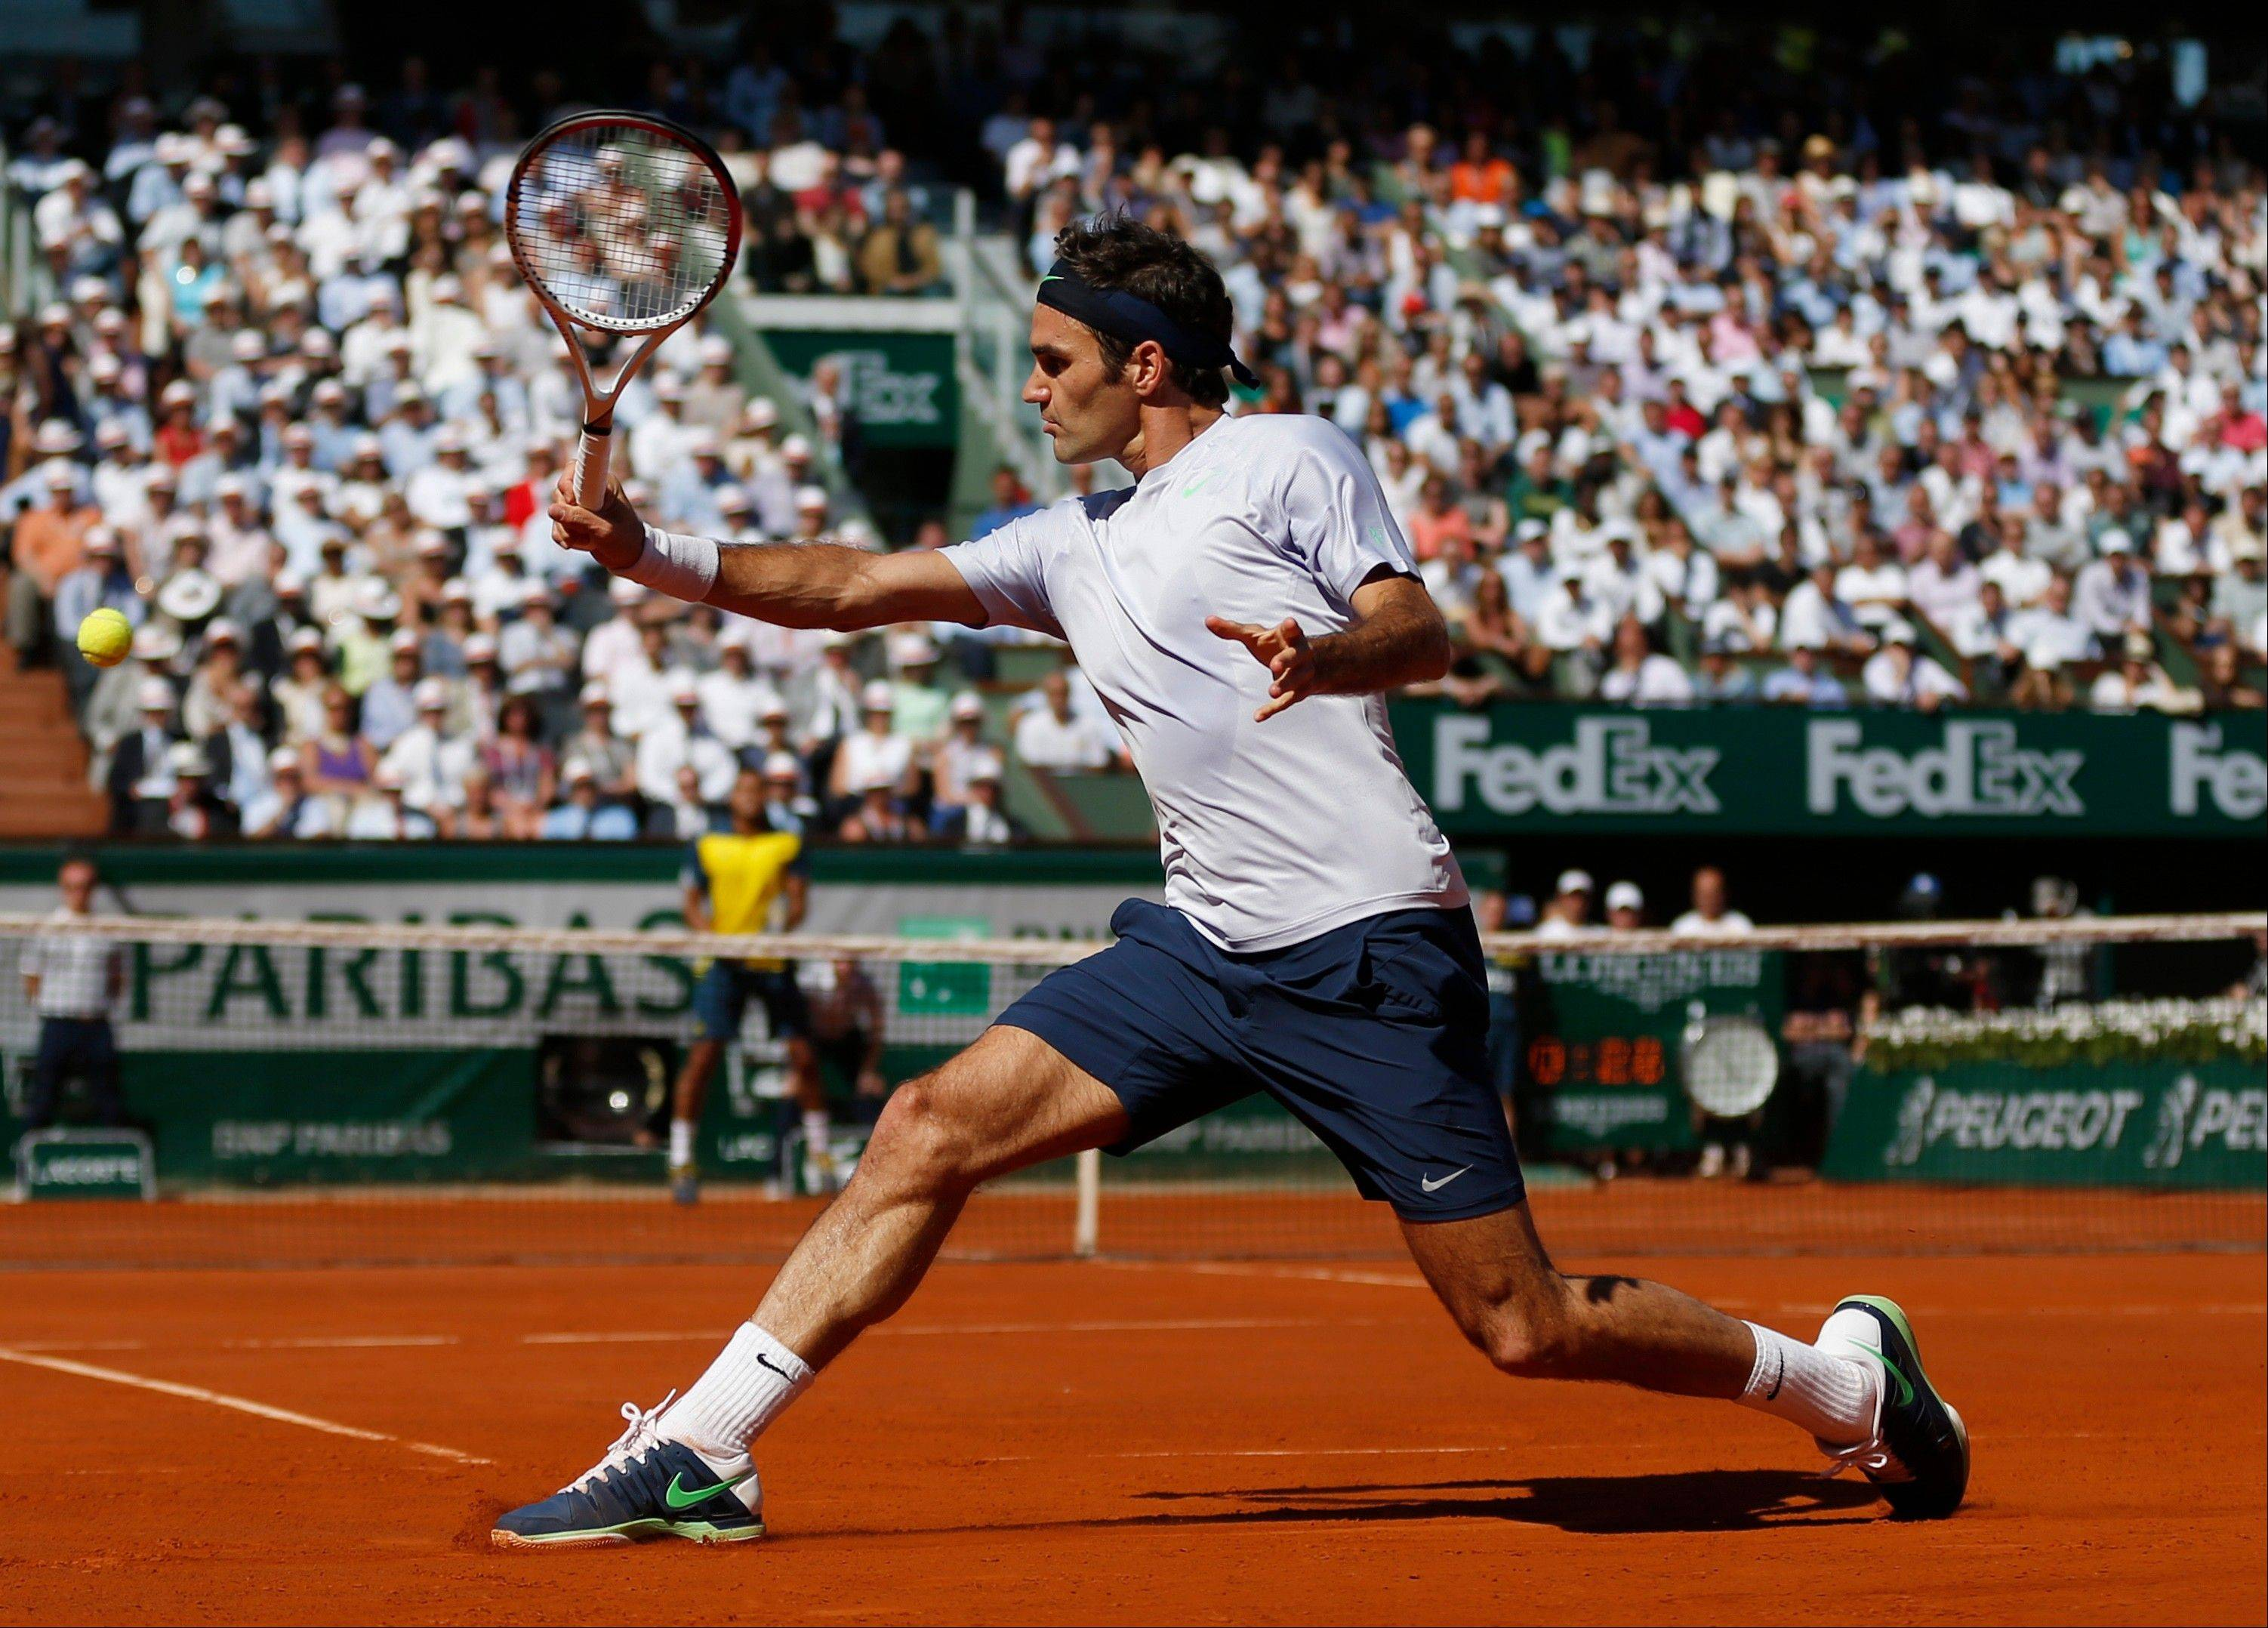 Switzerland's Roger Federer returns the ball to France's Jo-Wilfried Tsonga during their quarterfinal match of the French Open tennis tournament at the Roland Garros stadium Tuesday, June 4, 2013 in Paris.